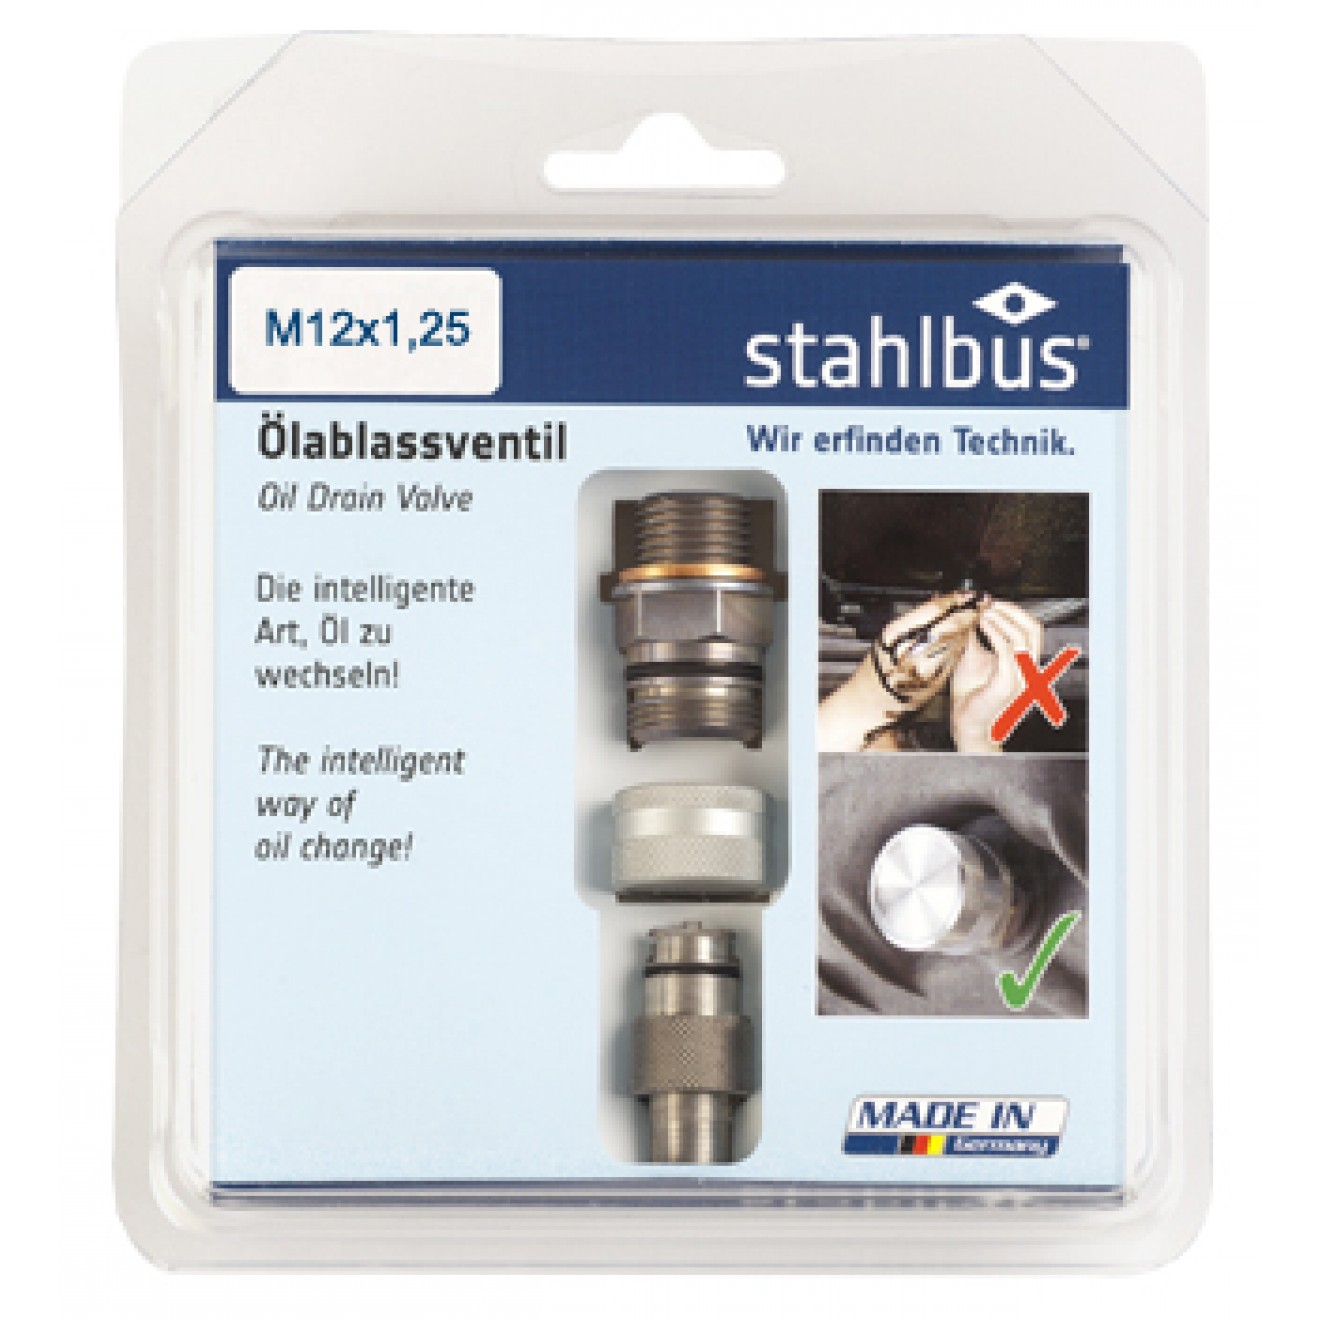 stahlbus Oil Drain Valve M12x1.25x12mm, steel (set)